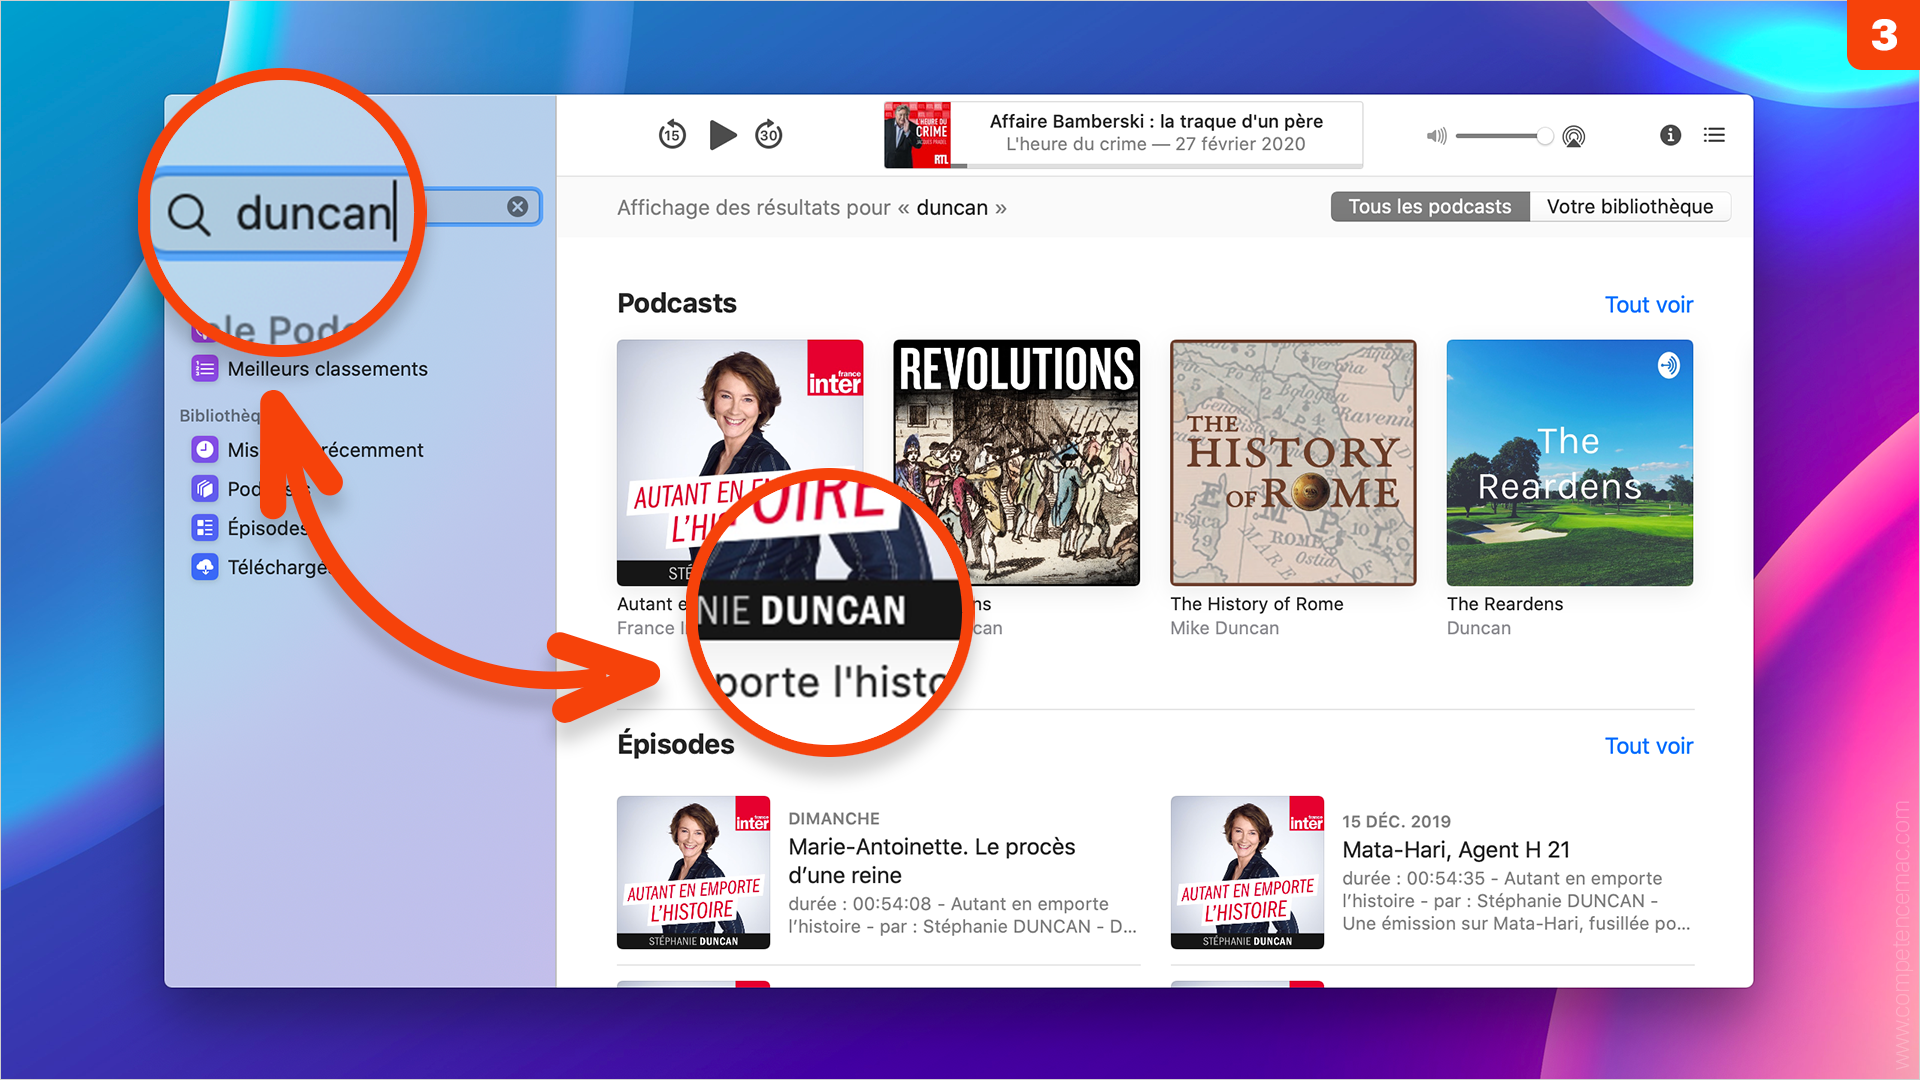 macOS Catalina • S'abonner à une émission avec la nouvelle application Podcasts